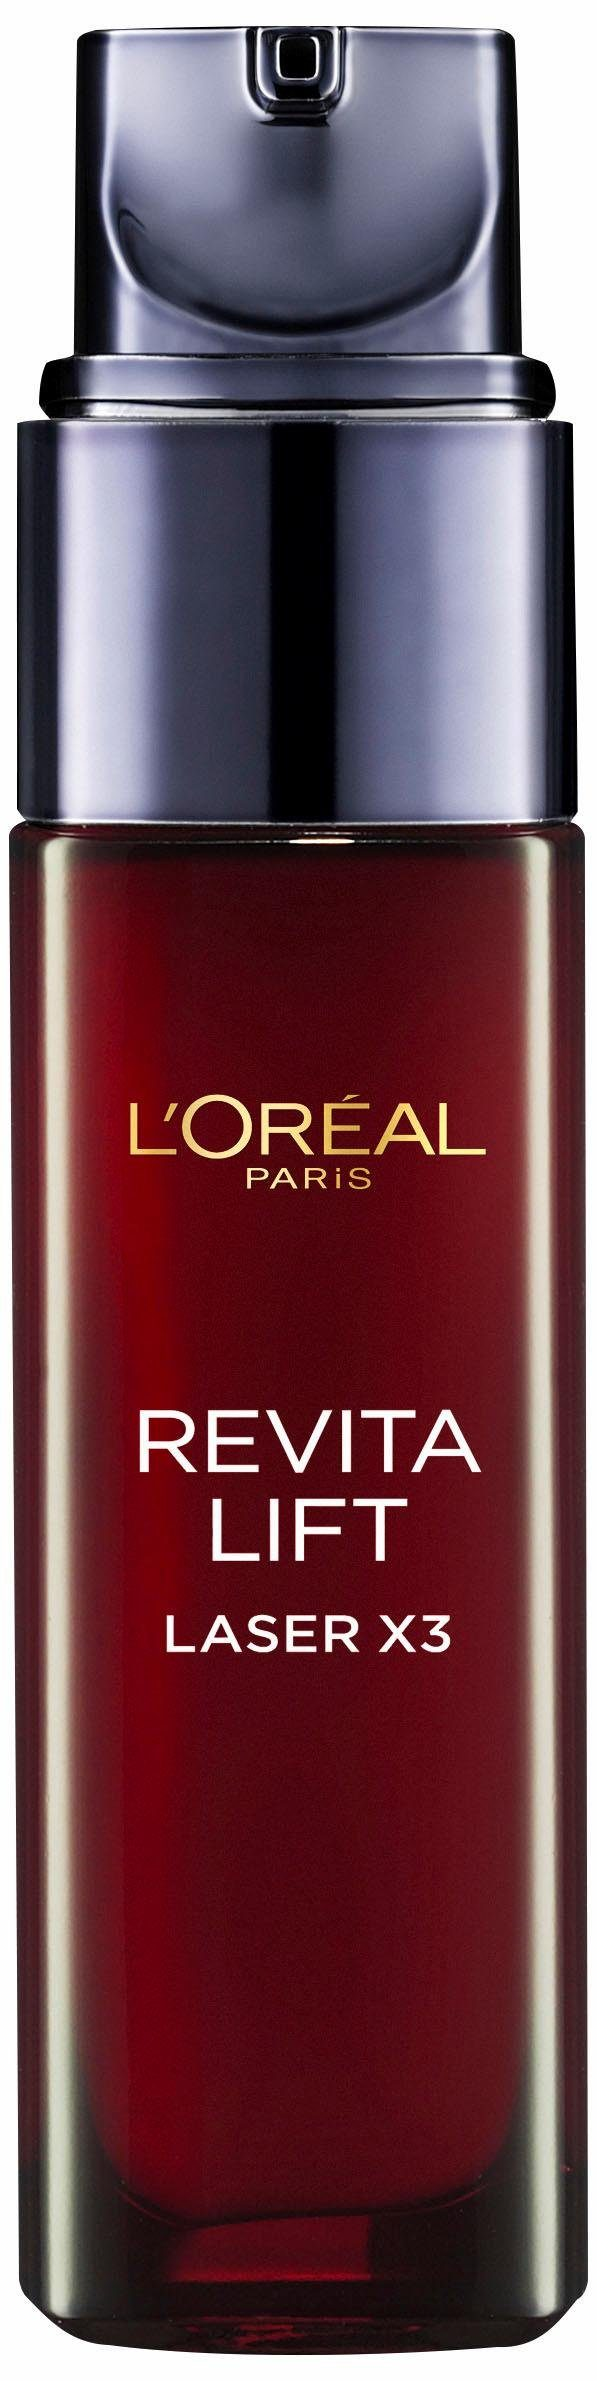 L'Oréal Paris »Revitalift Laser X3«, Anti-Age Serum, 30 ml